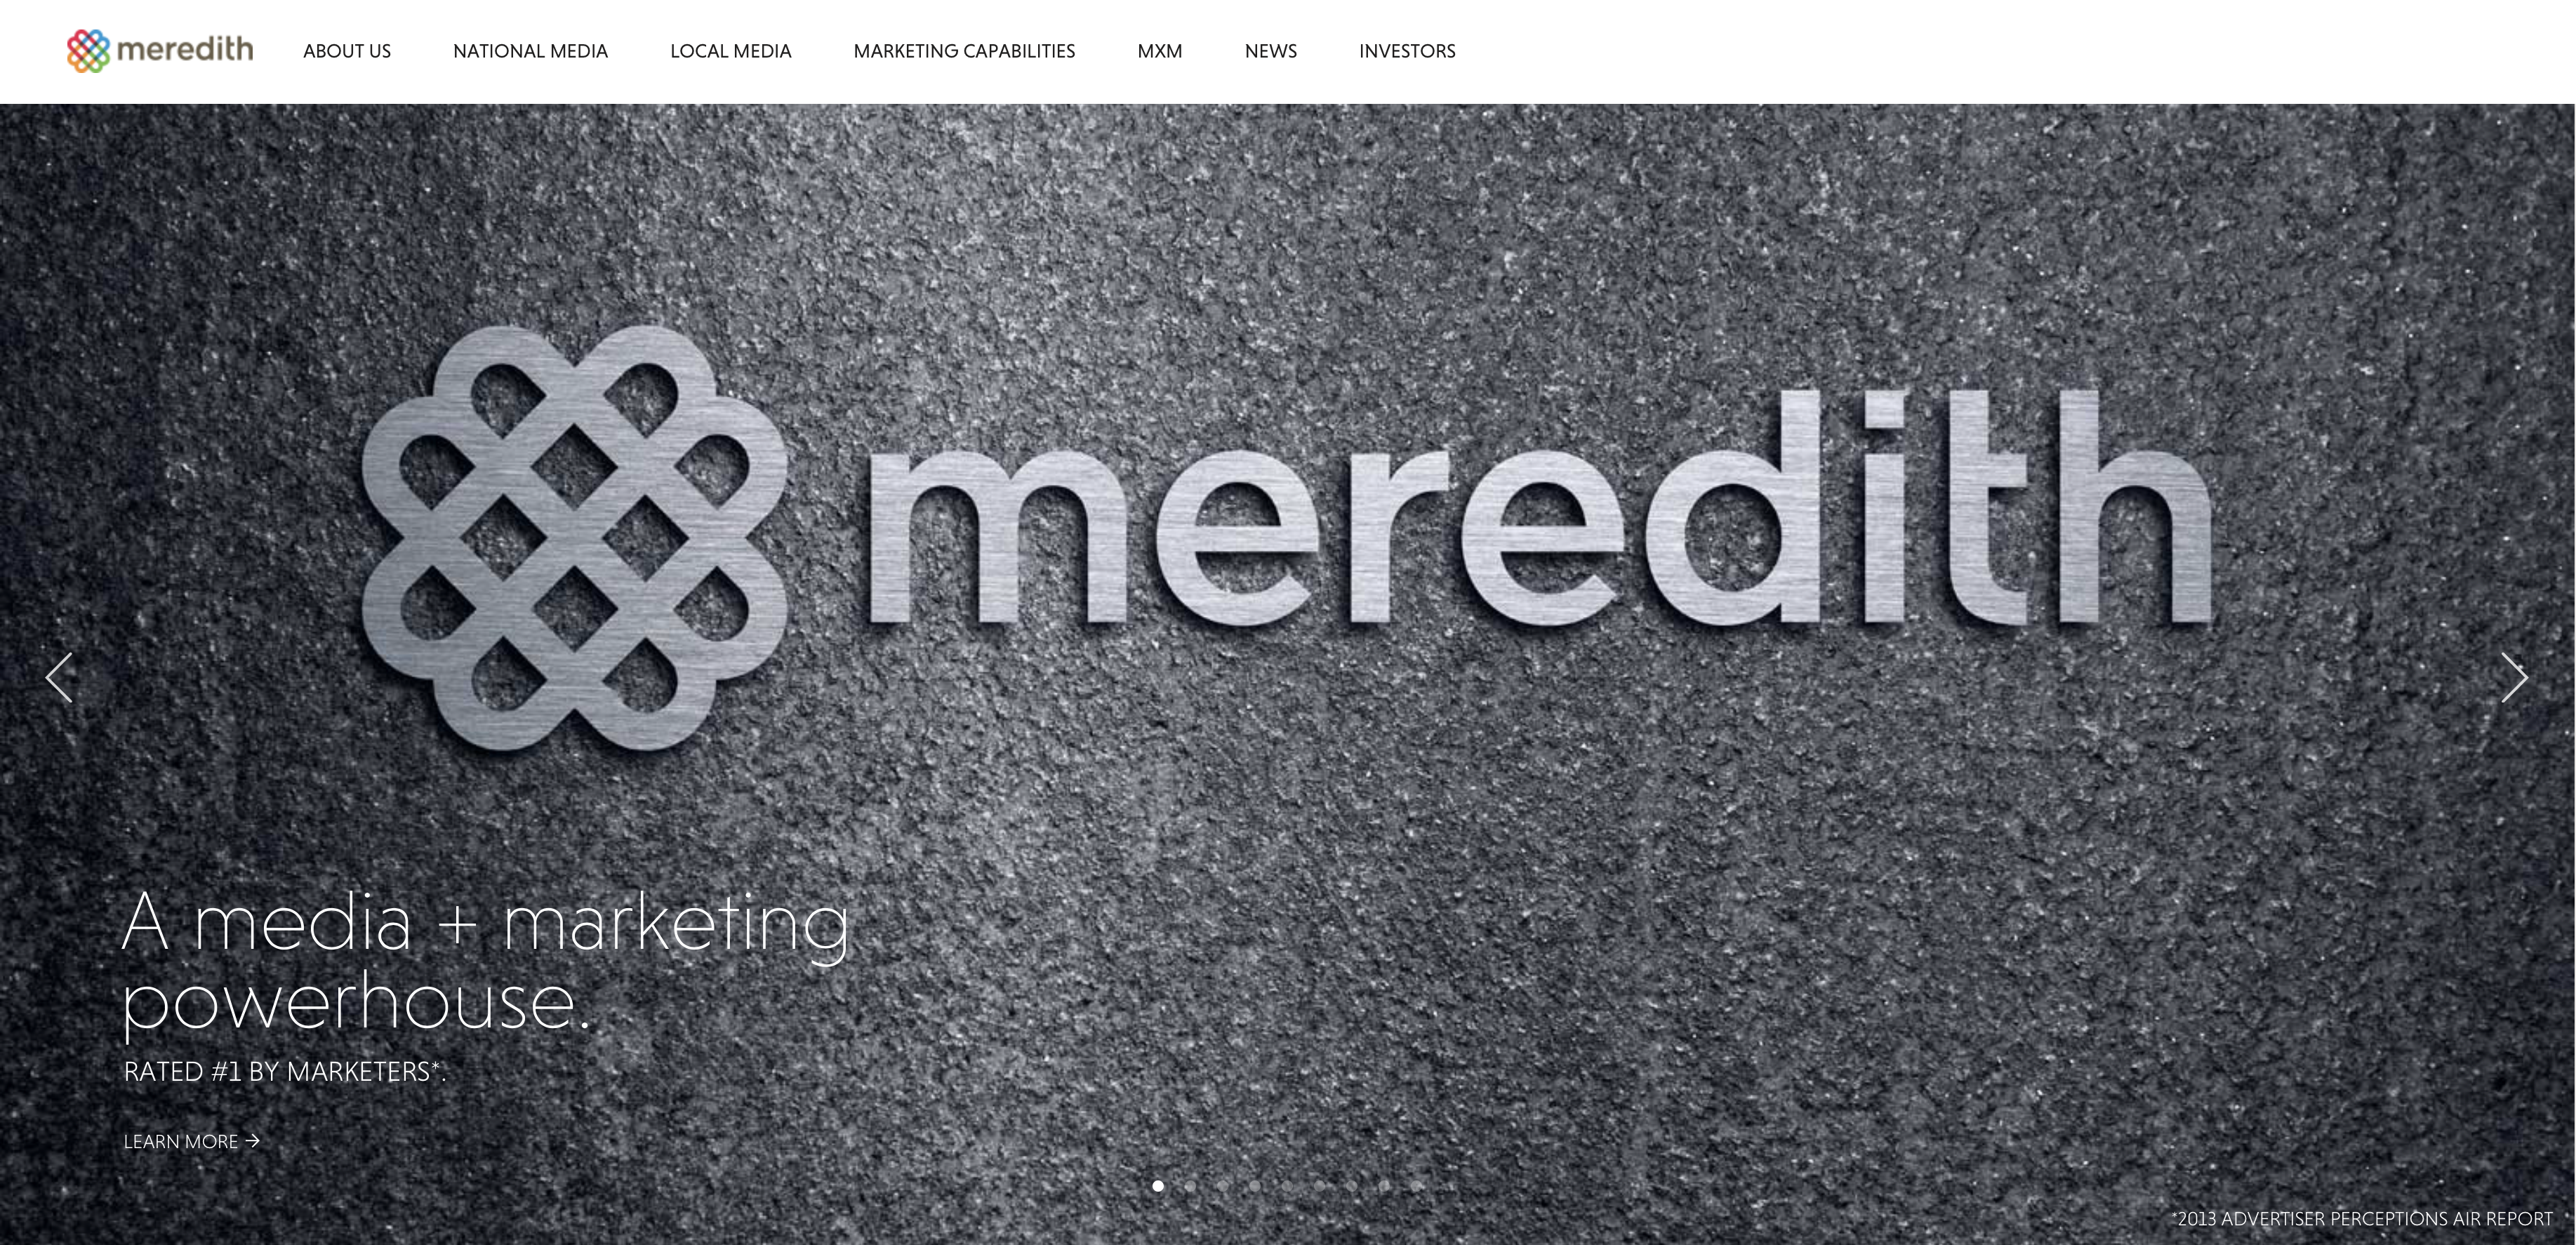 meredith corporation 1 day ago  meredith corporation (mdp - free report) is a media and marketing services company based in des moines, ia the company has two operating segments: national media and local media as of this year .